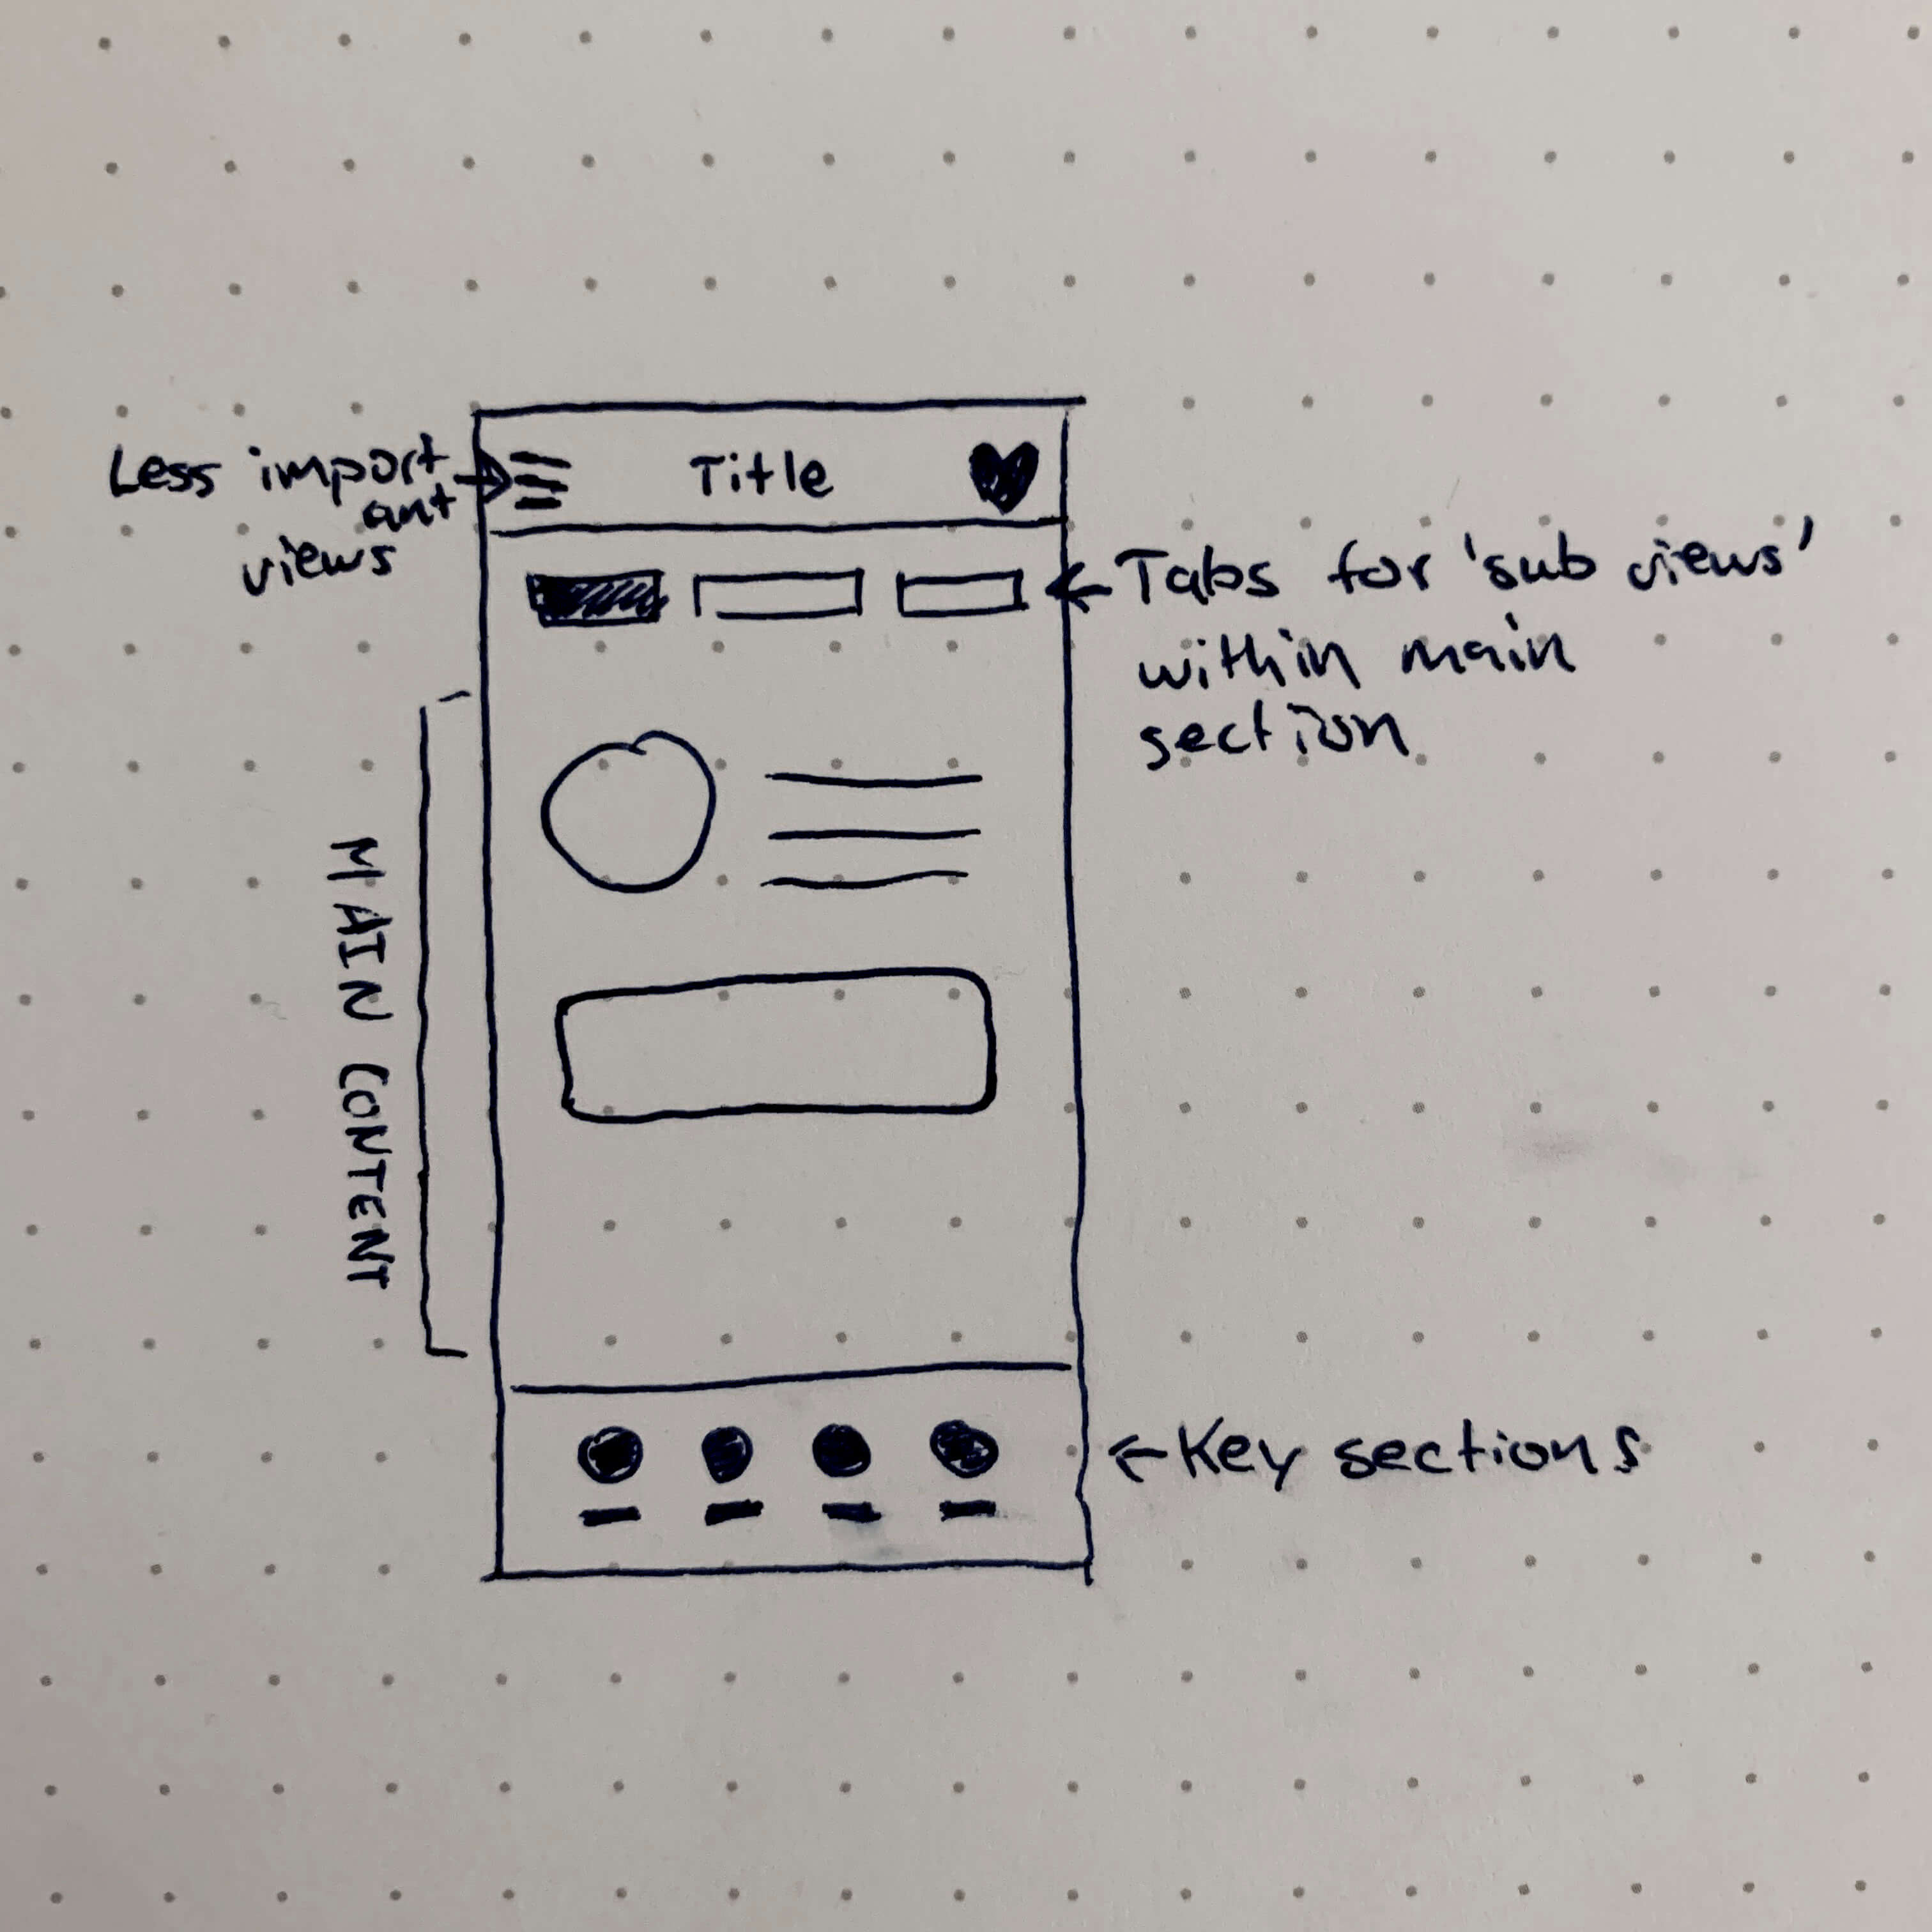 Initial sketch outlining a new way of structuring navigation